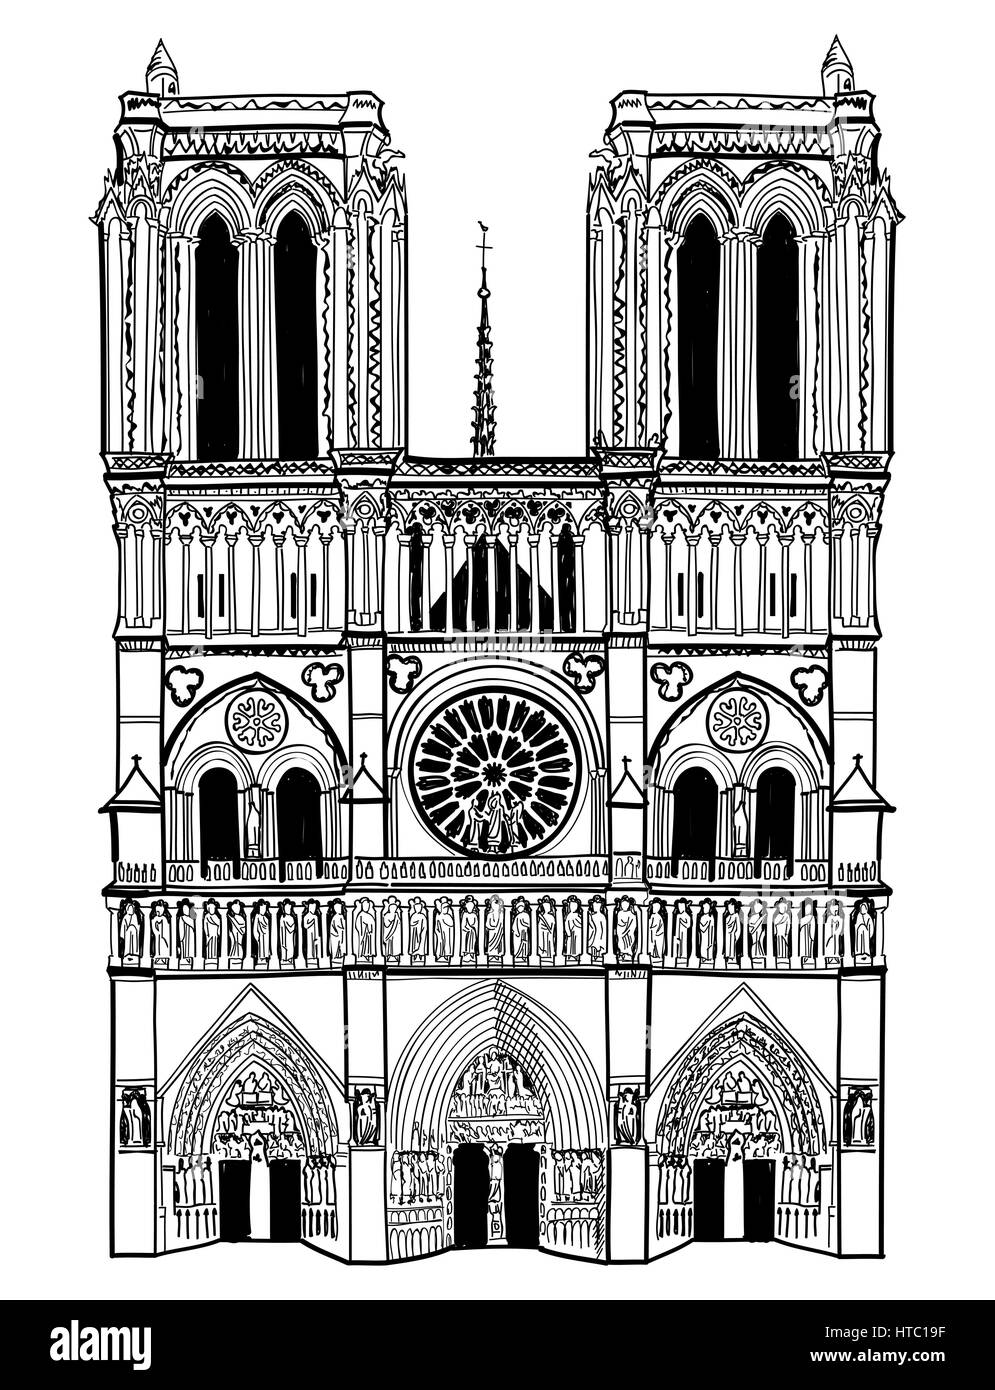 Notre Dame de Paris cathedral, France. Hand drawing vector illustration isolated on white background. - Stock Image